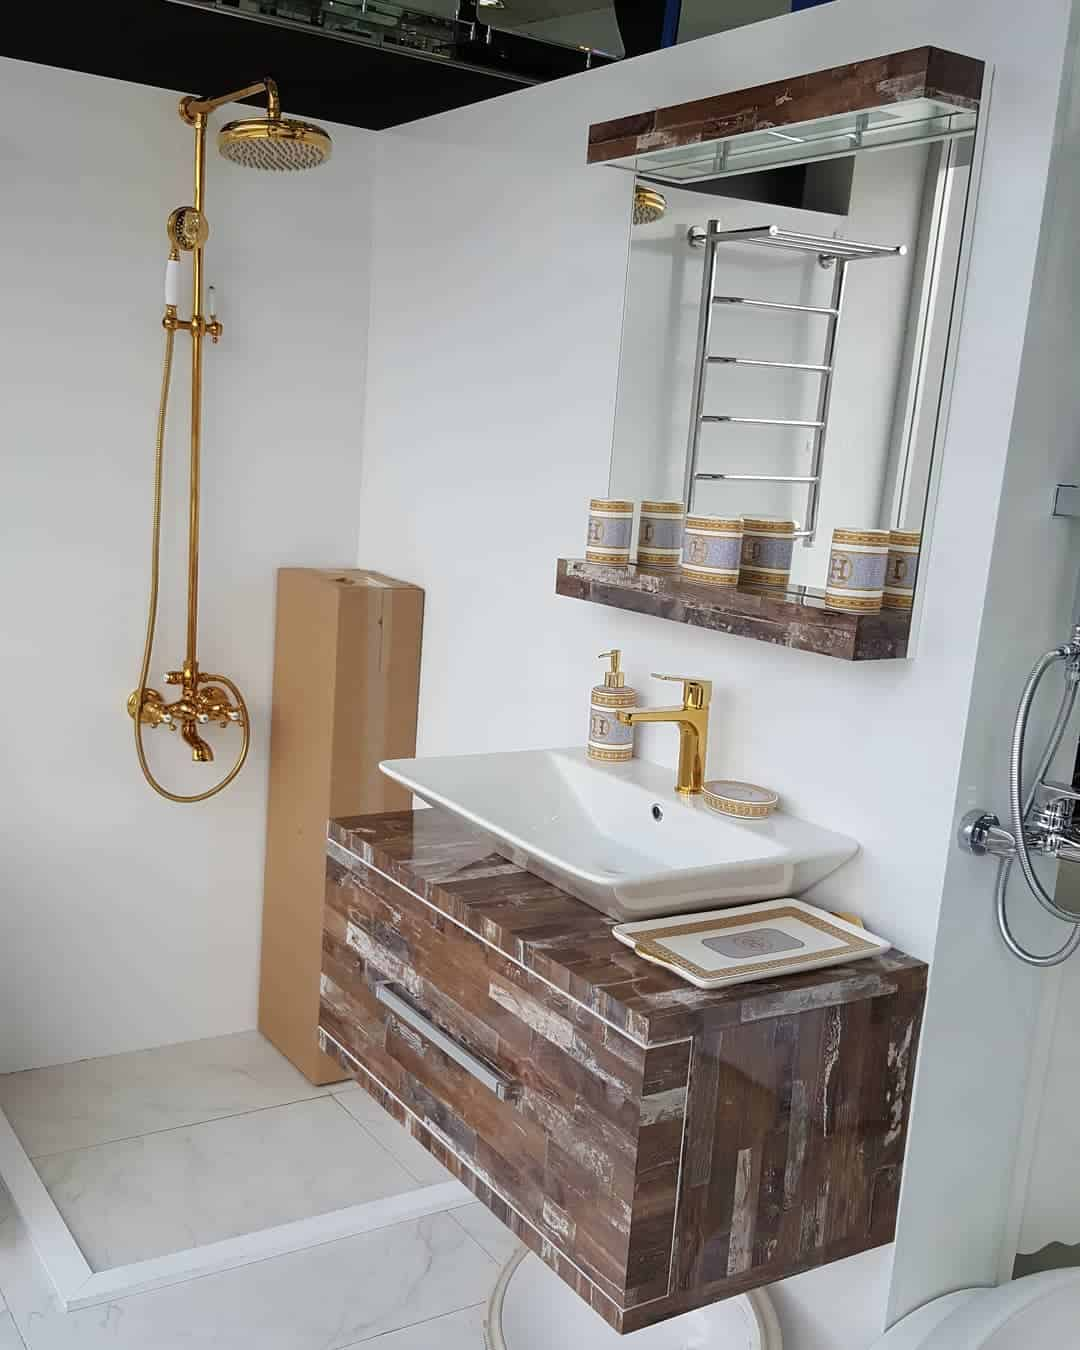 Moroccan bathroom 2020 bathroom trends from East